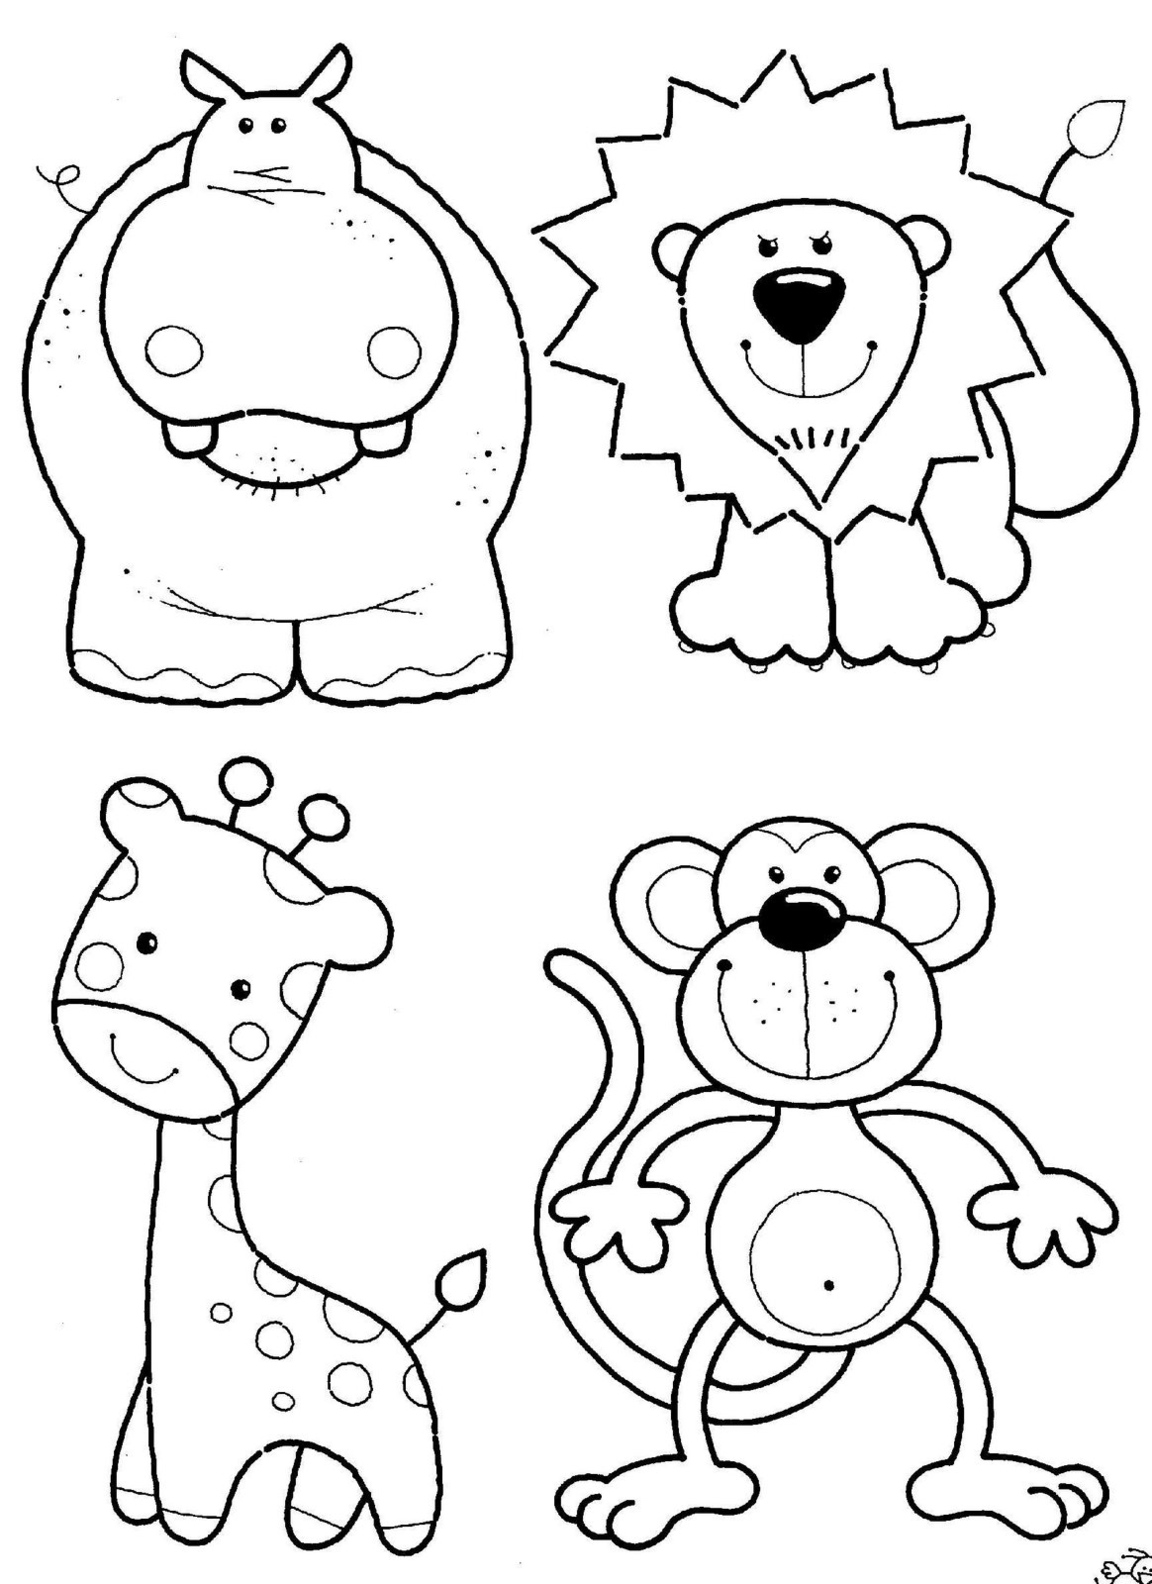 coloring pages animals top 10 free printable farm animals coloring pages online coloring pages animals